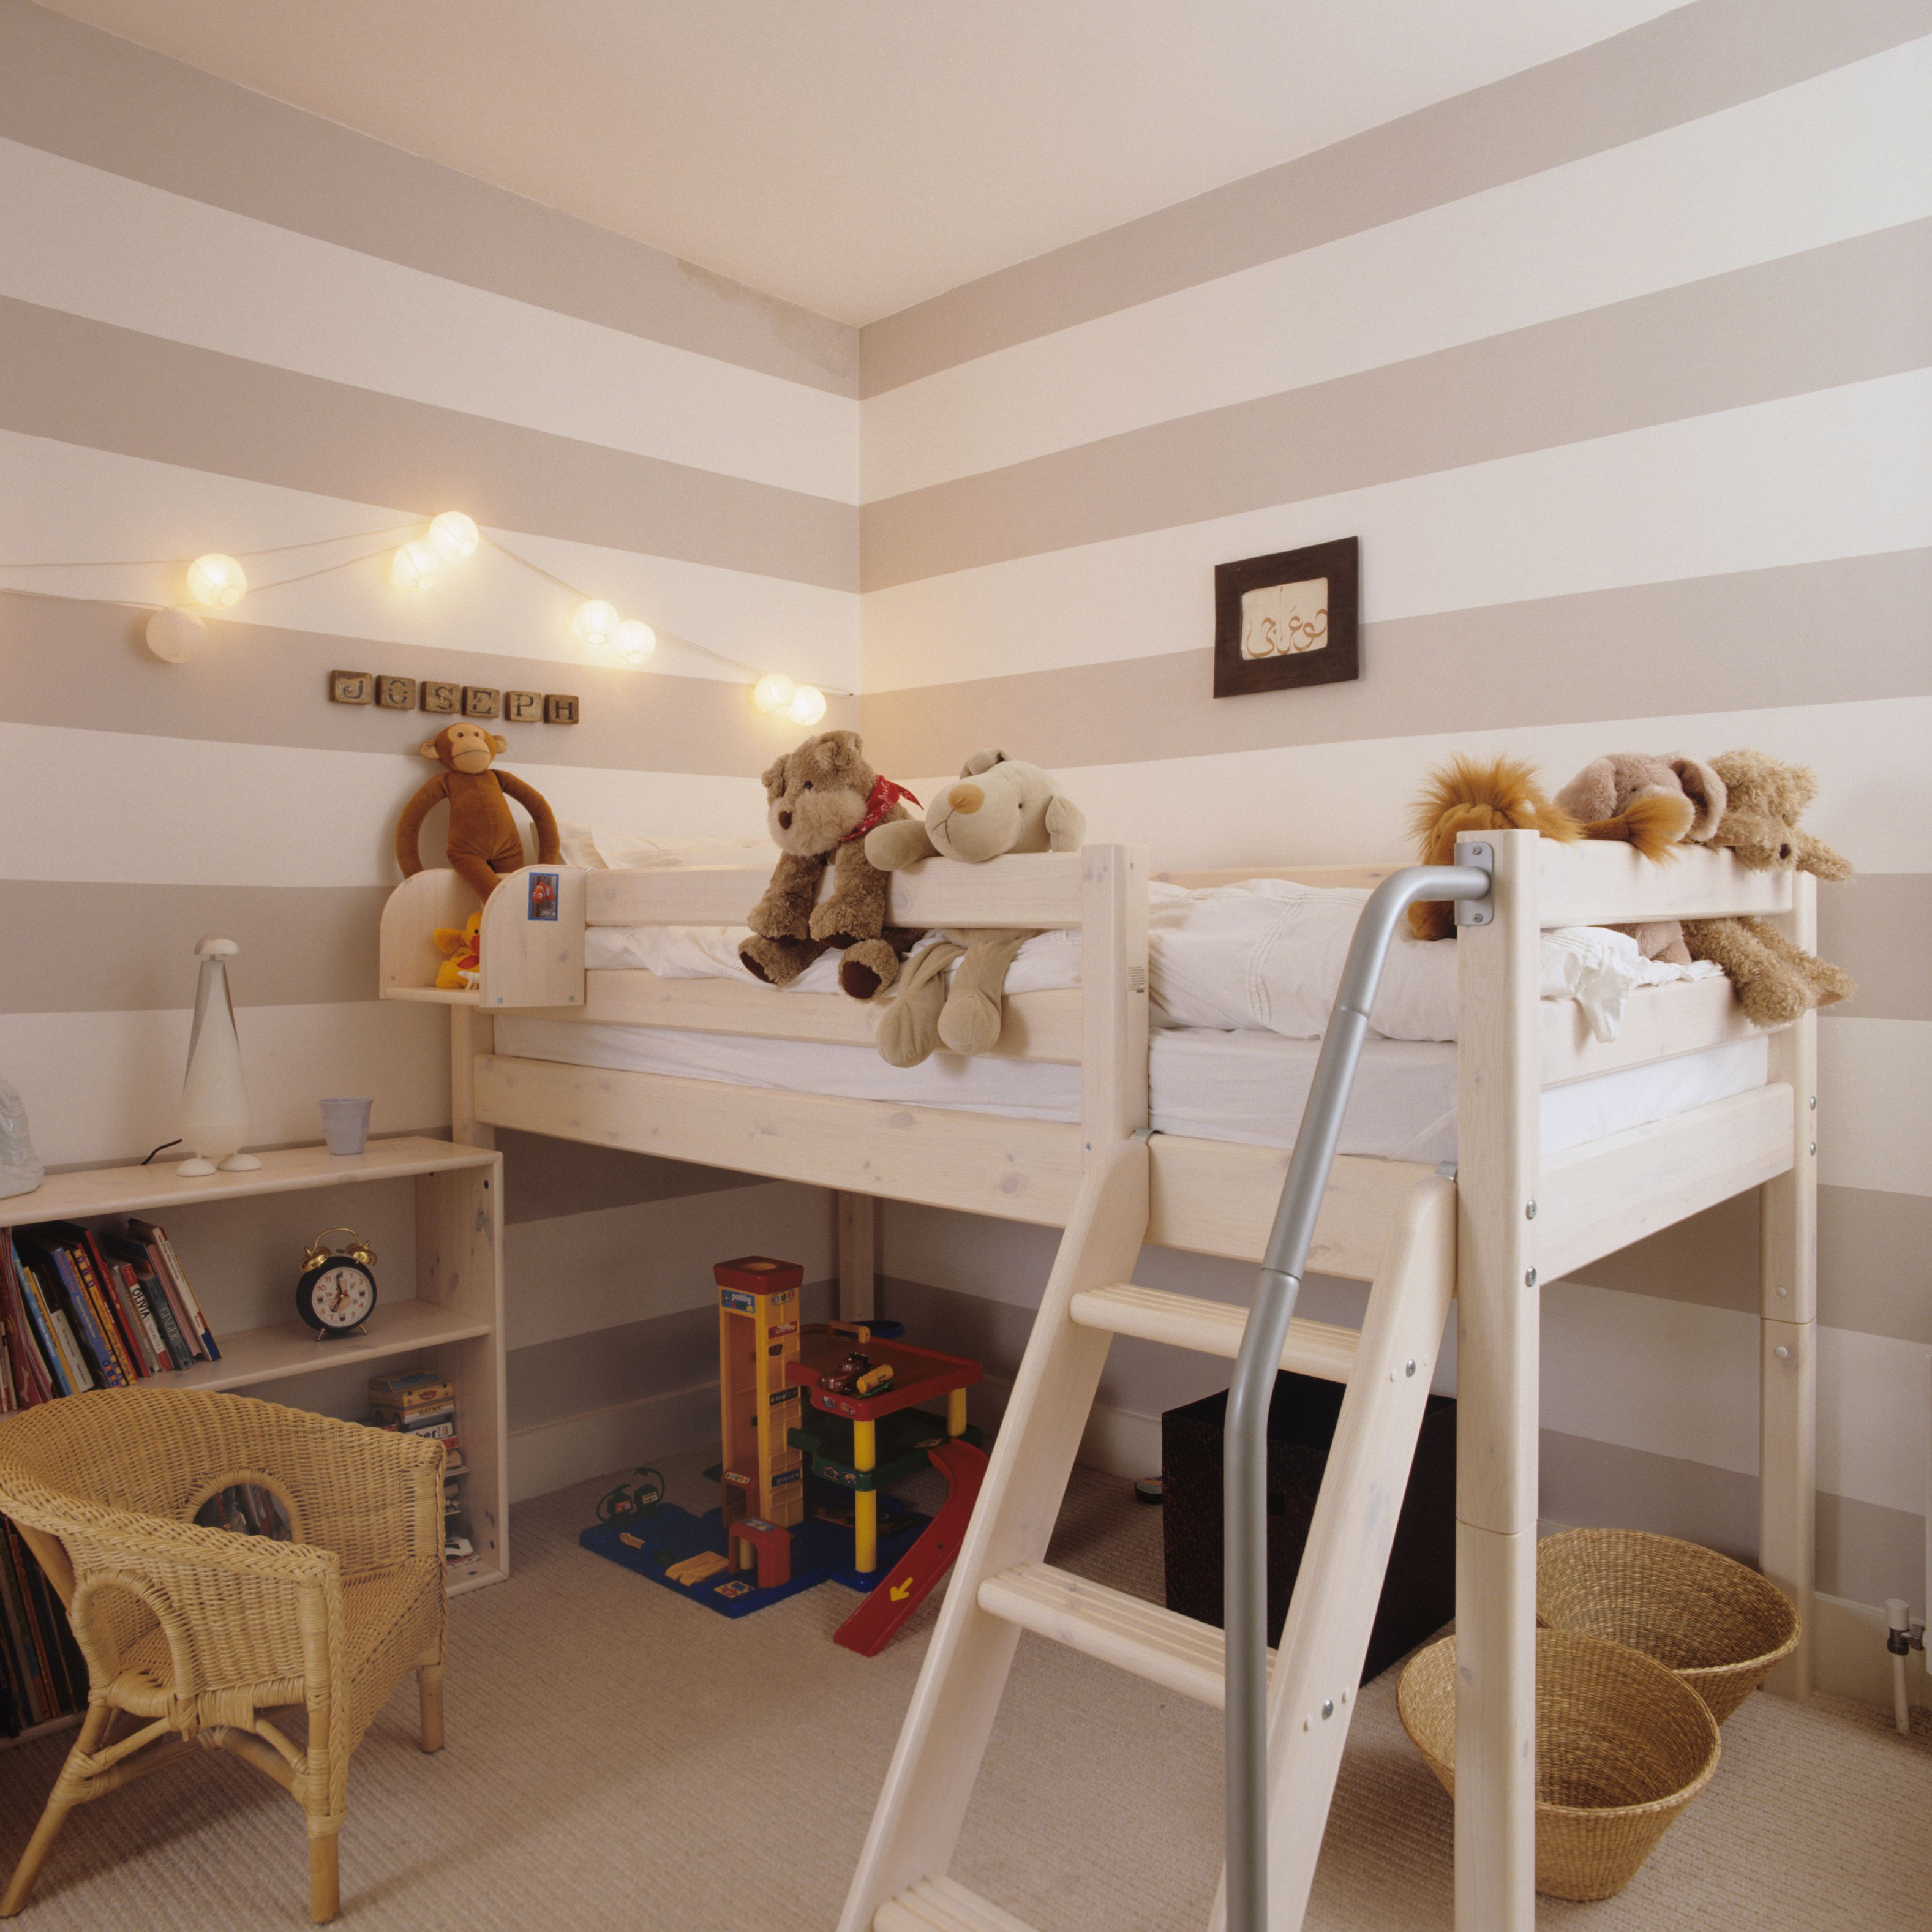 5 Beautiful Accent Wall Ideas To Spruce Up Your Home: 15 Free DIY Loft Bed Plans For Kids And Adults